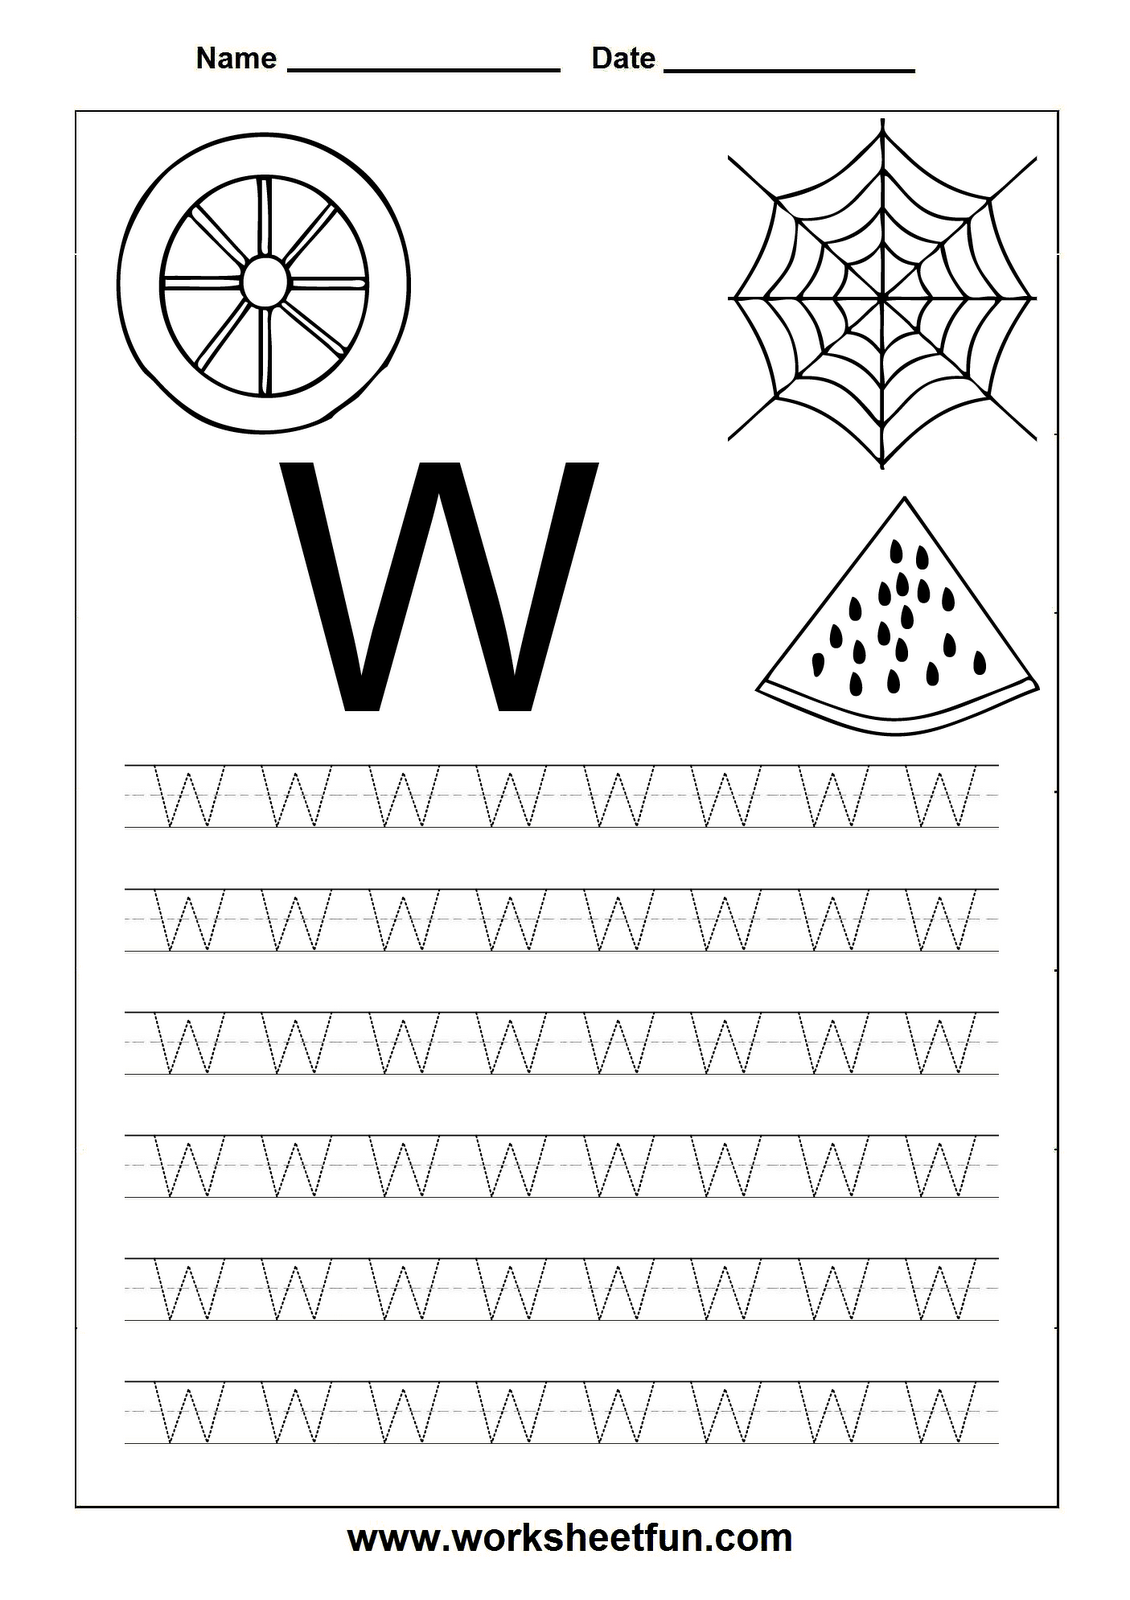 worksheet Letter W Worksheets For Preschool 78 best images about letter ww on pinterest preschool alphabet worksheets and w